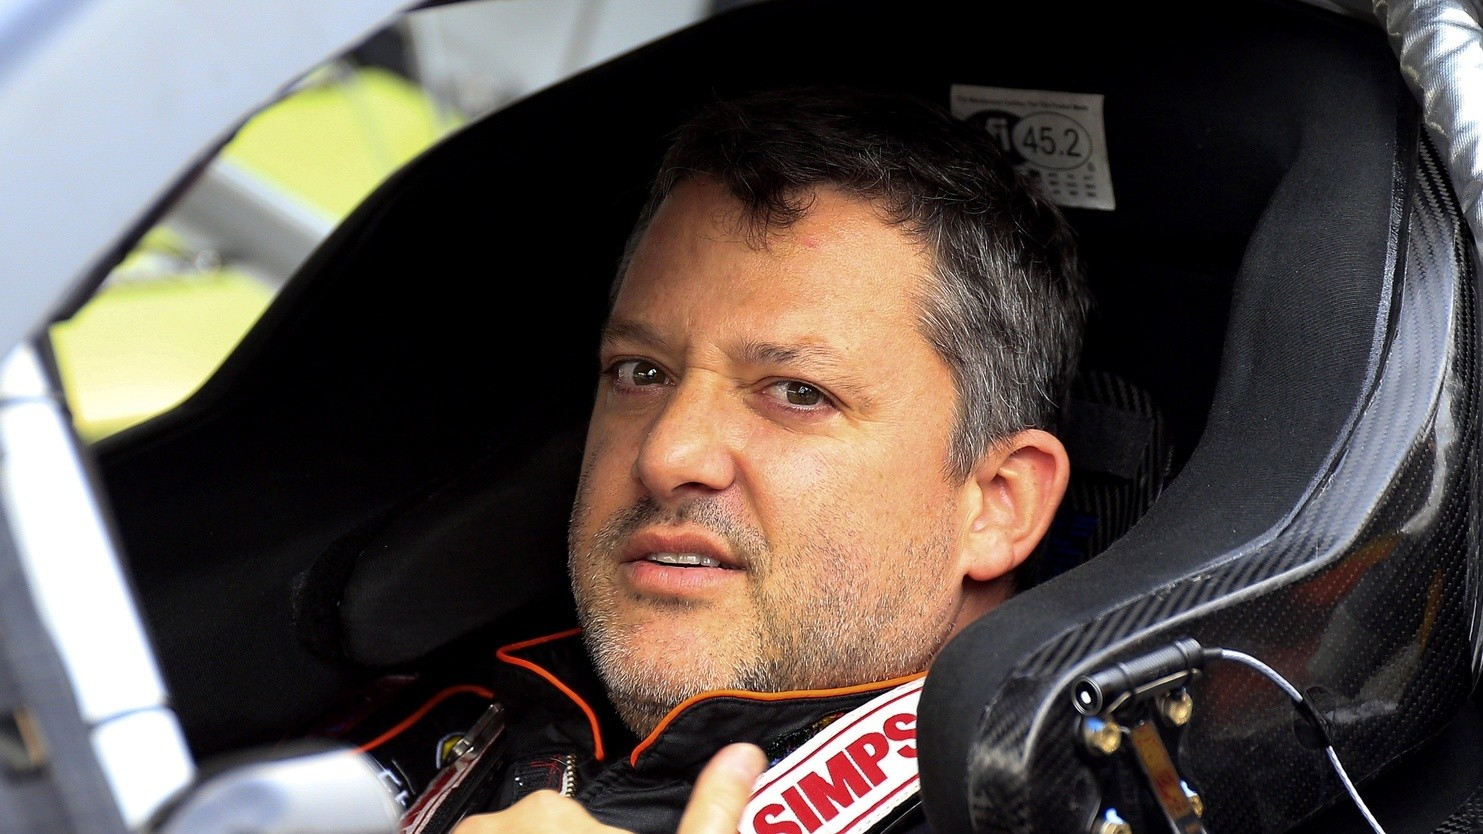 Tony Stewart Cleared to Make NASCAR Return This Weekend